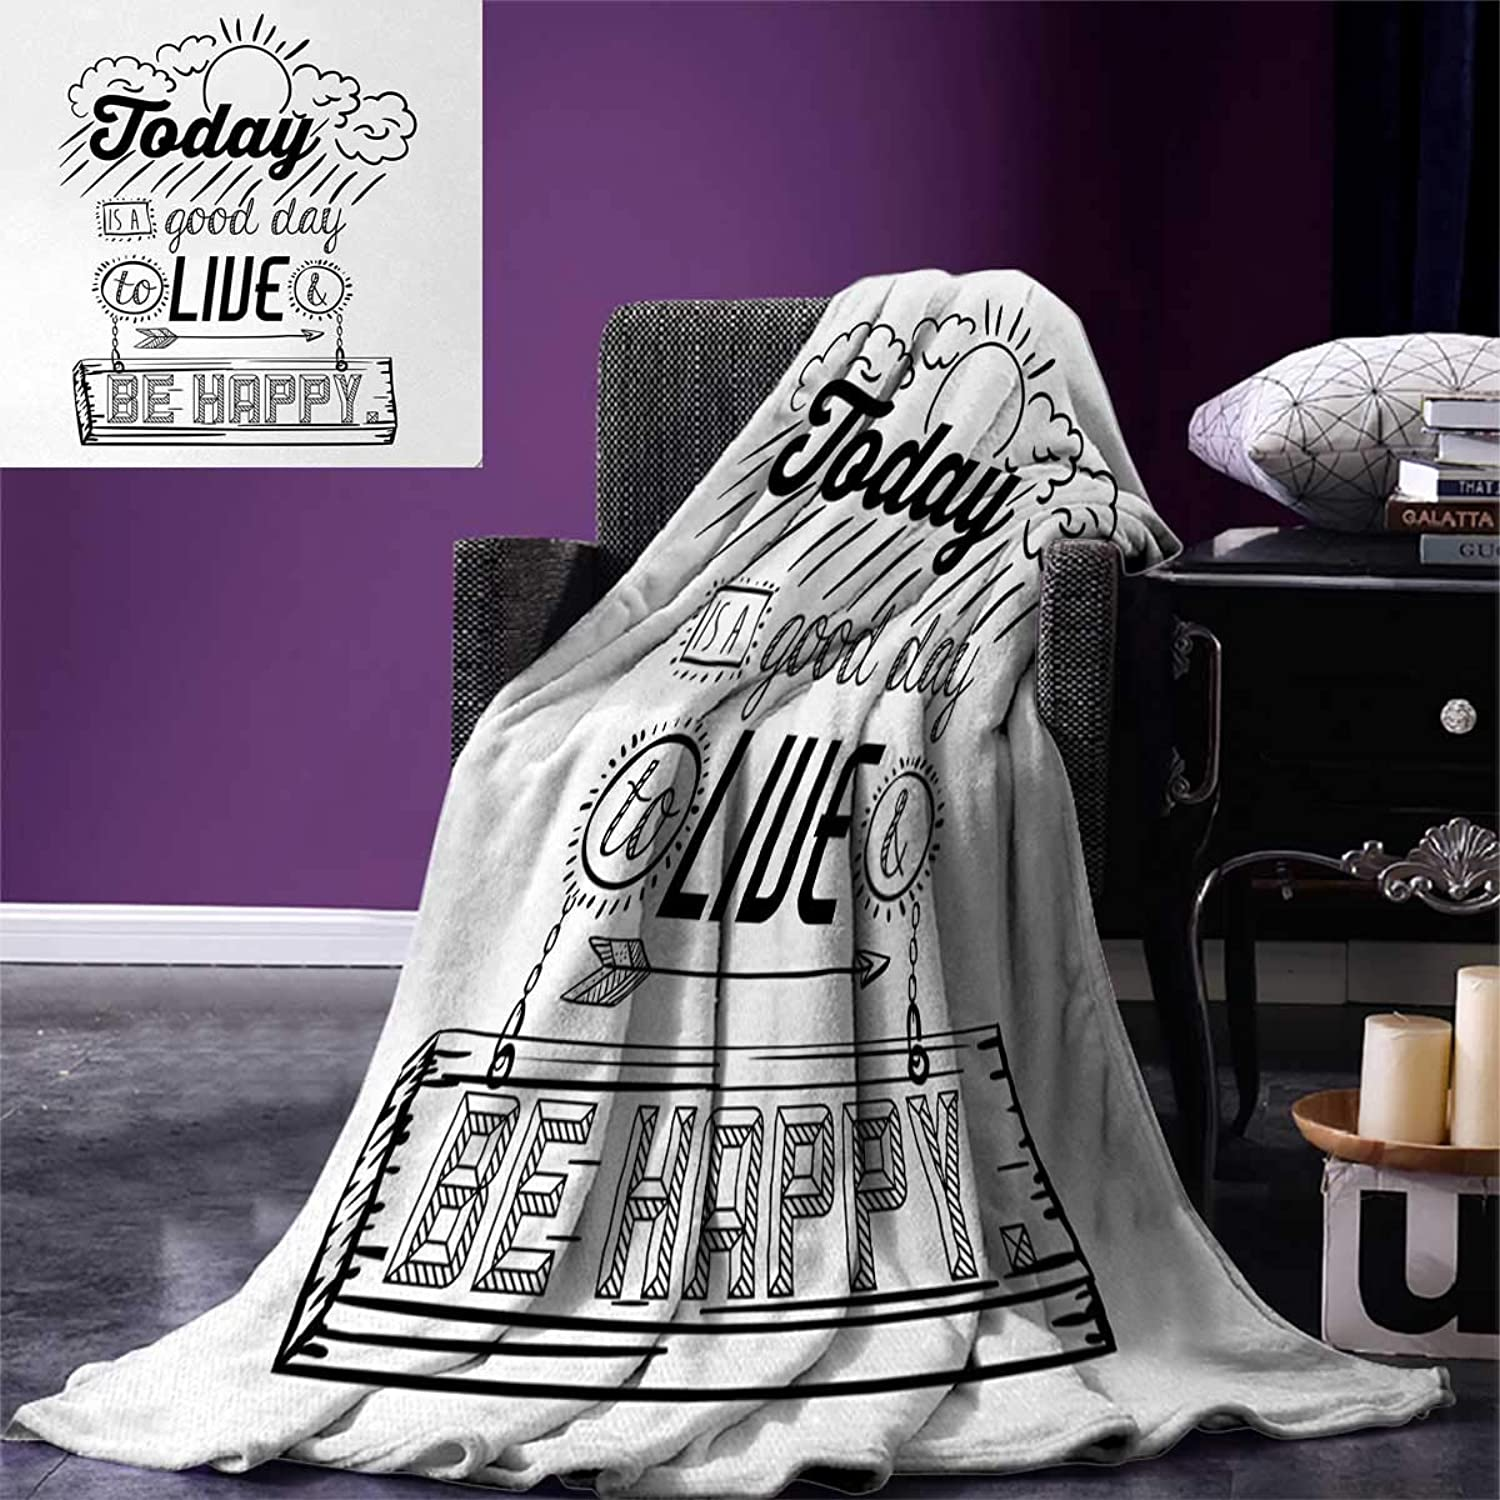 Anniutwo Quotes Travel Throw Blanket Today is a Good Day to Live be Happy Enjoy Reminding Gratitude Inspire Vision Velvet Plush Throw Blanket 60 x50  Black White